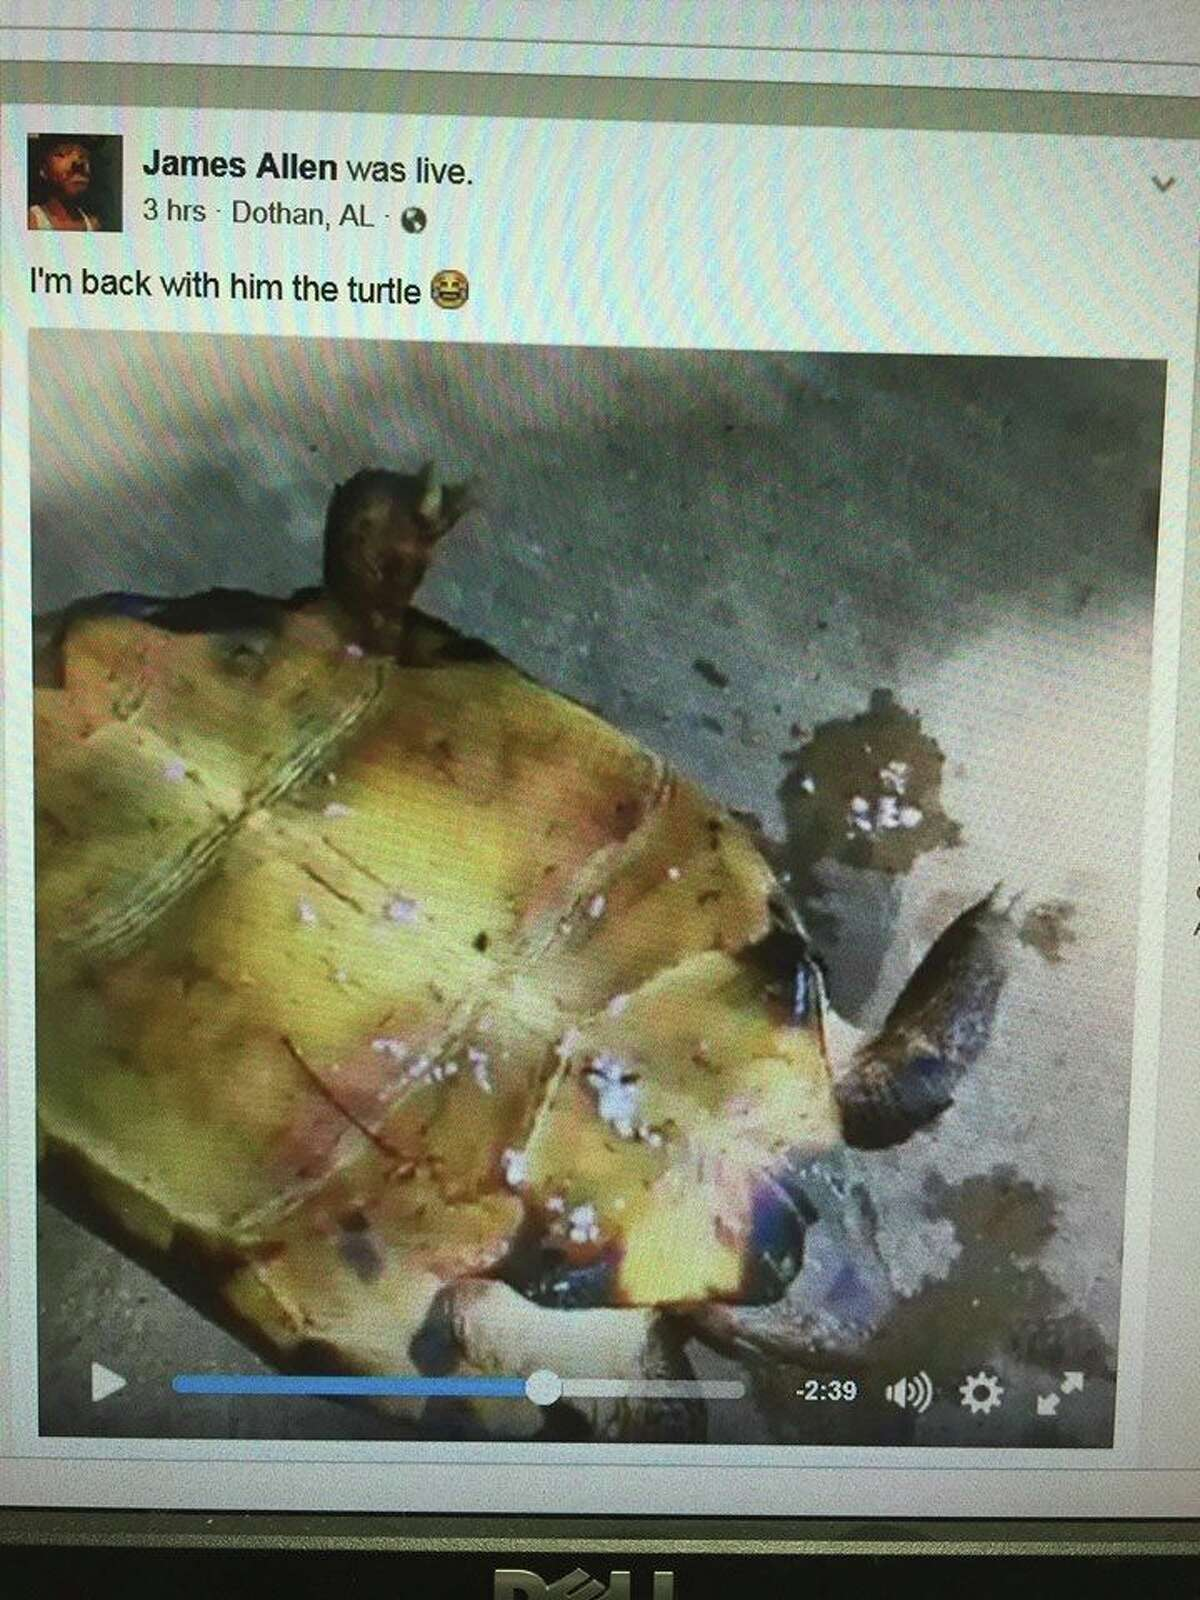 James Allen, 19, from Dothan, Alabama, faces animal cruelty charges for allegedly setting a rare tortoise on fire and streaming it on Facebook Live.